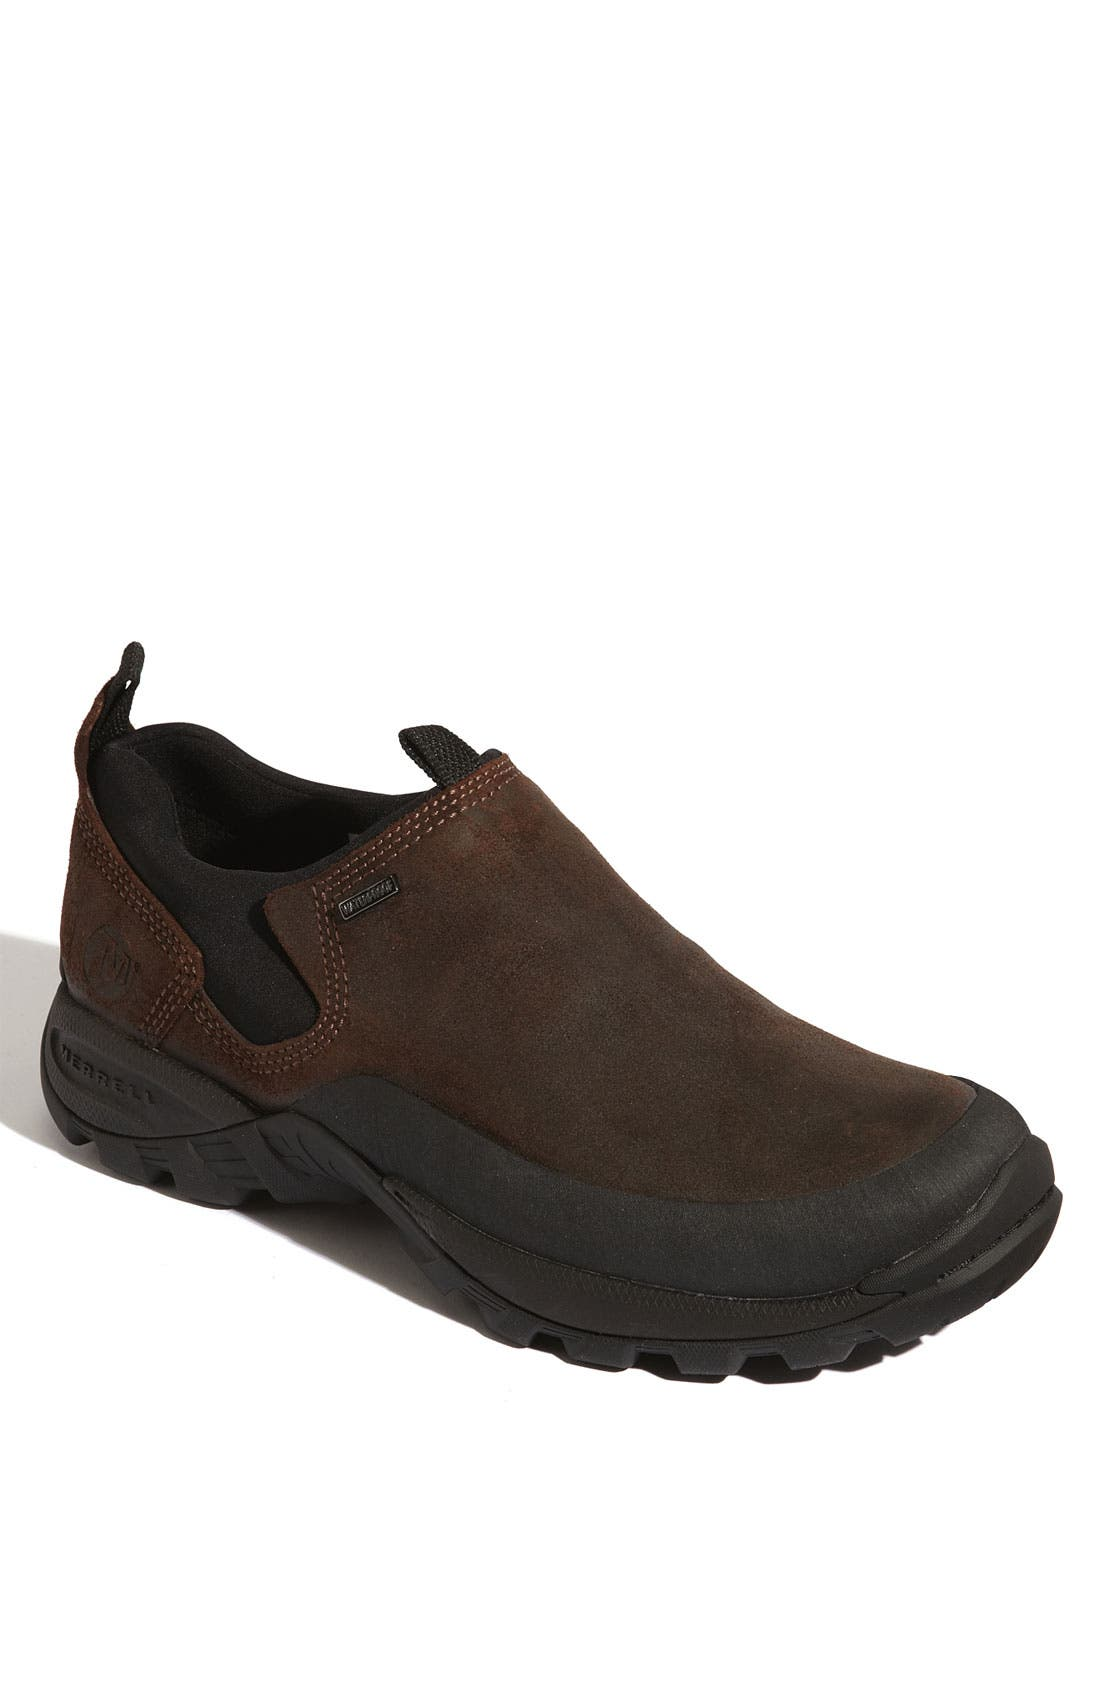 Alternate Image 1 Selected - Merrell 'Innsbruck' Waterproof Slip-On (Men)